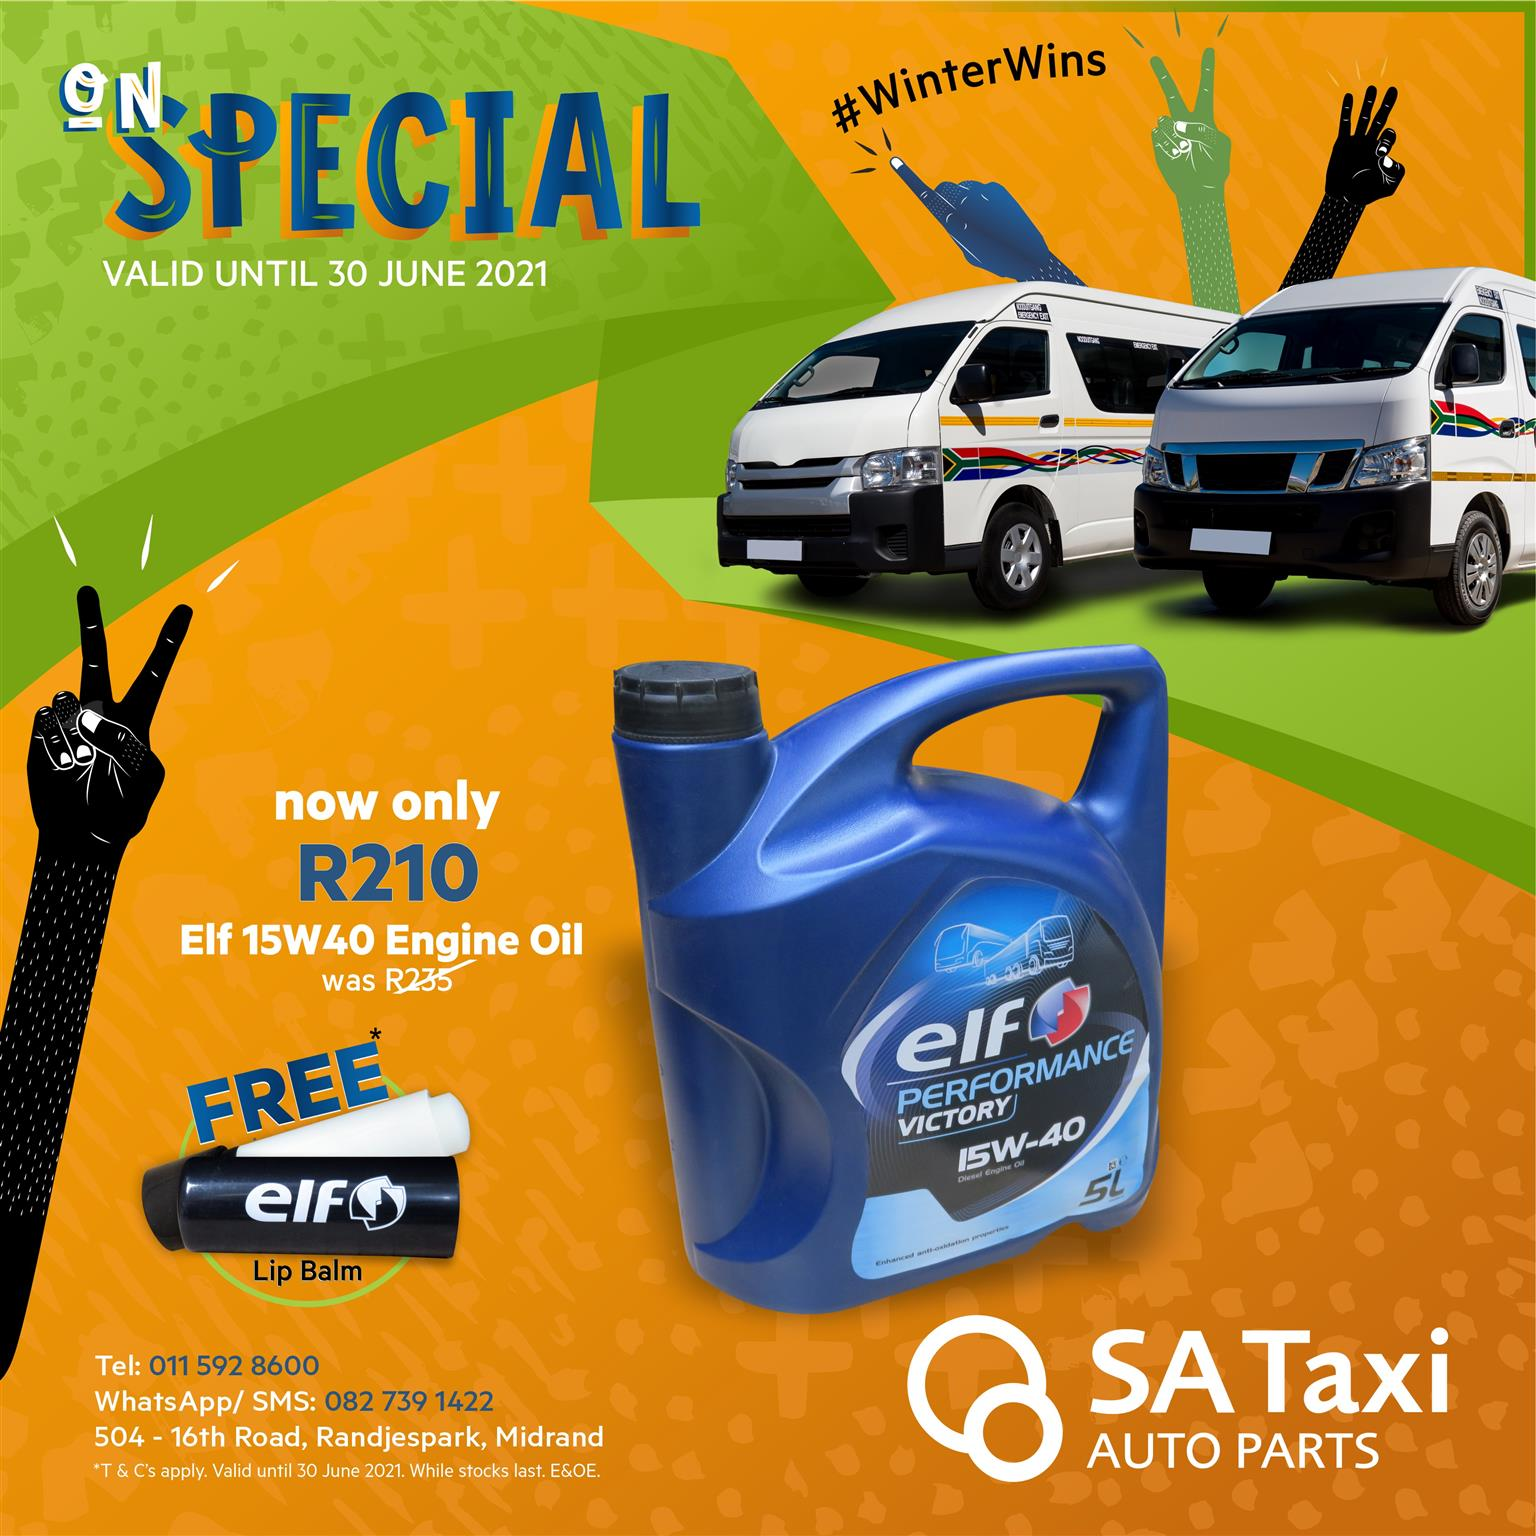 ON SPECIAL - Elf Engine Oil 15W40 for Toyota Quantum / Nissan NV350 Impendulo